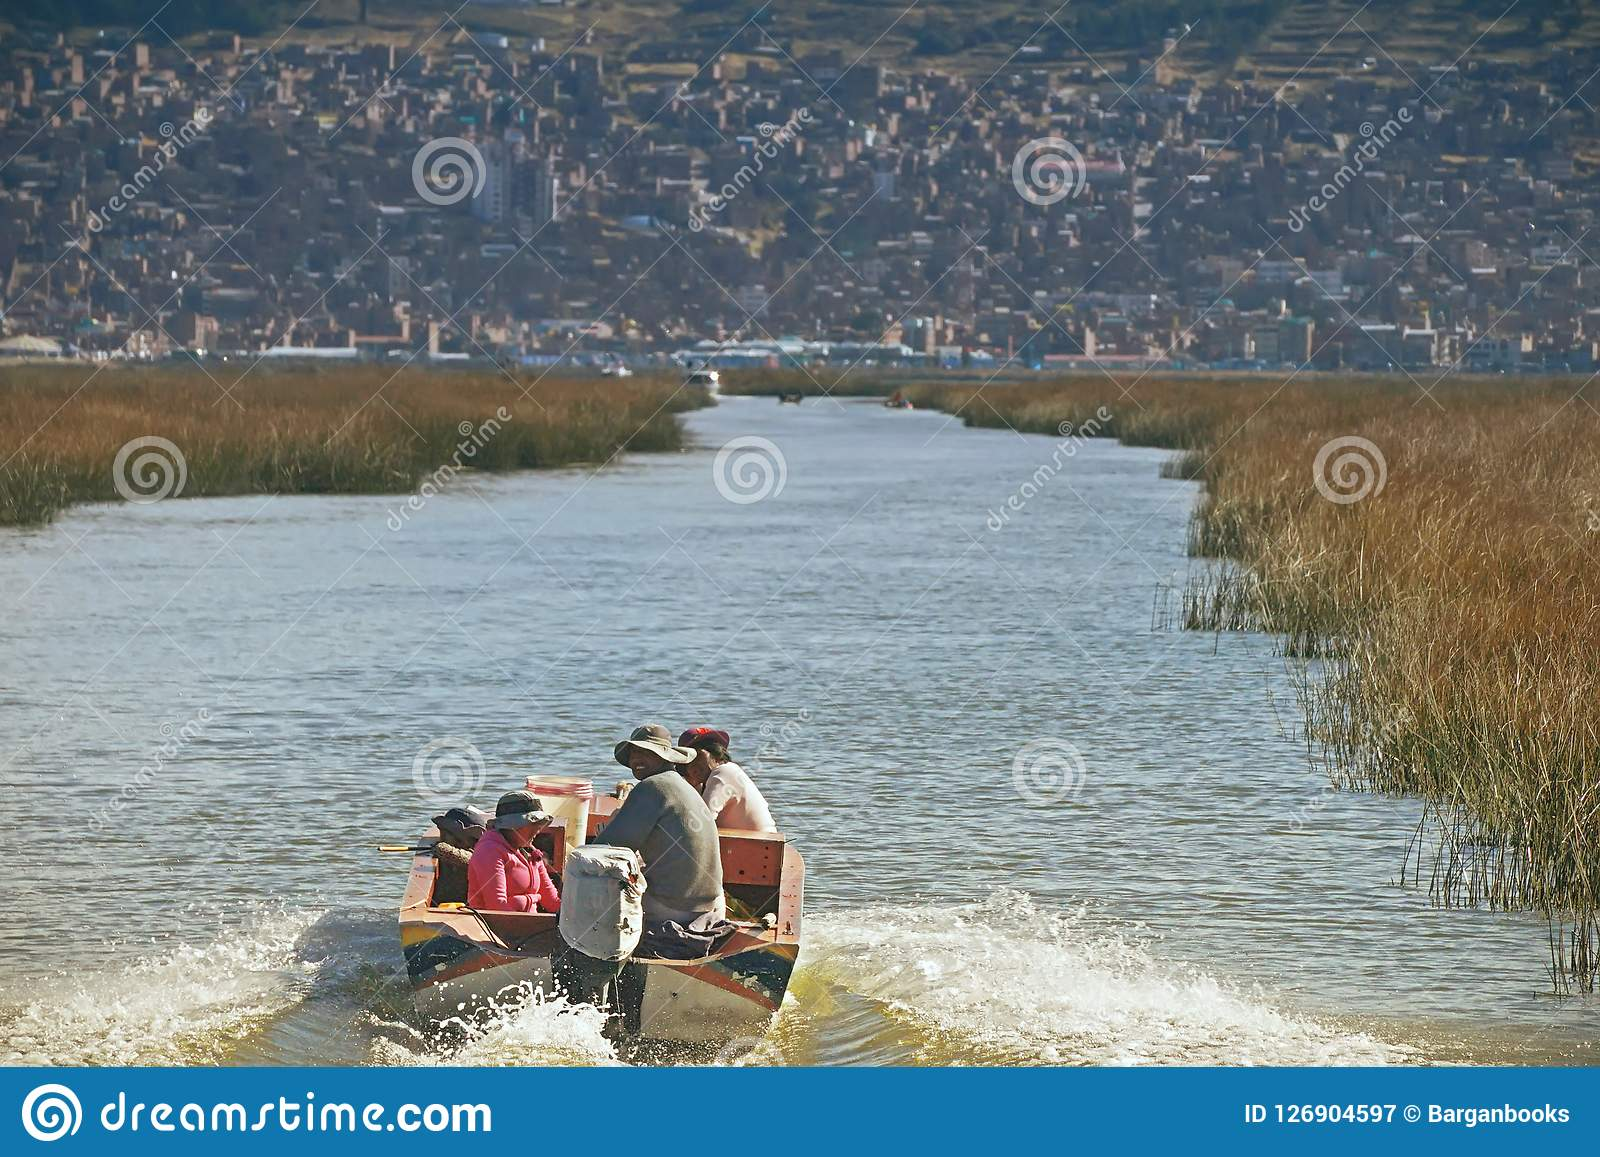 Lake Titicaca, Peru - August 17th, 2018:A peruvian family sails on Lake Titicaca, a large, deep lake in the Andes on the border of